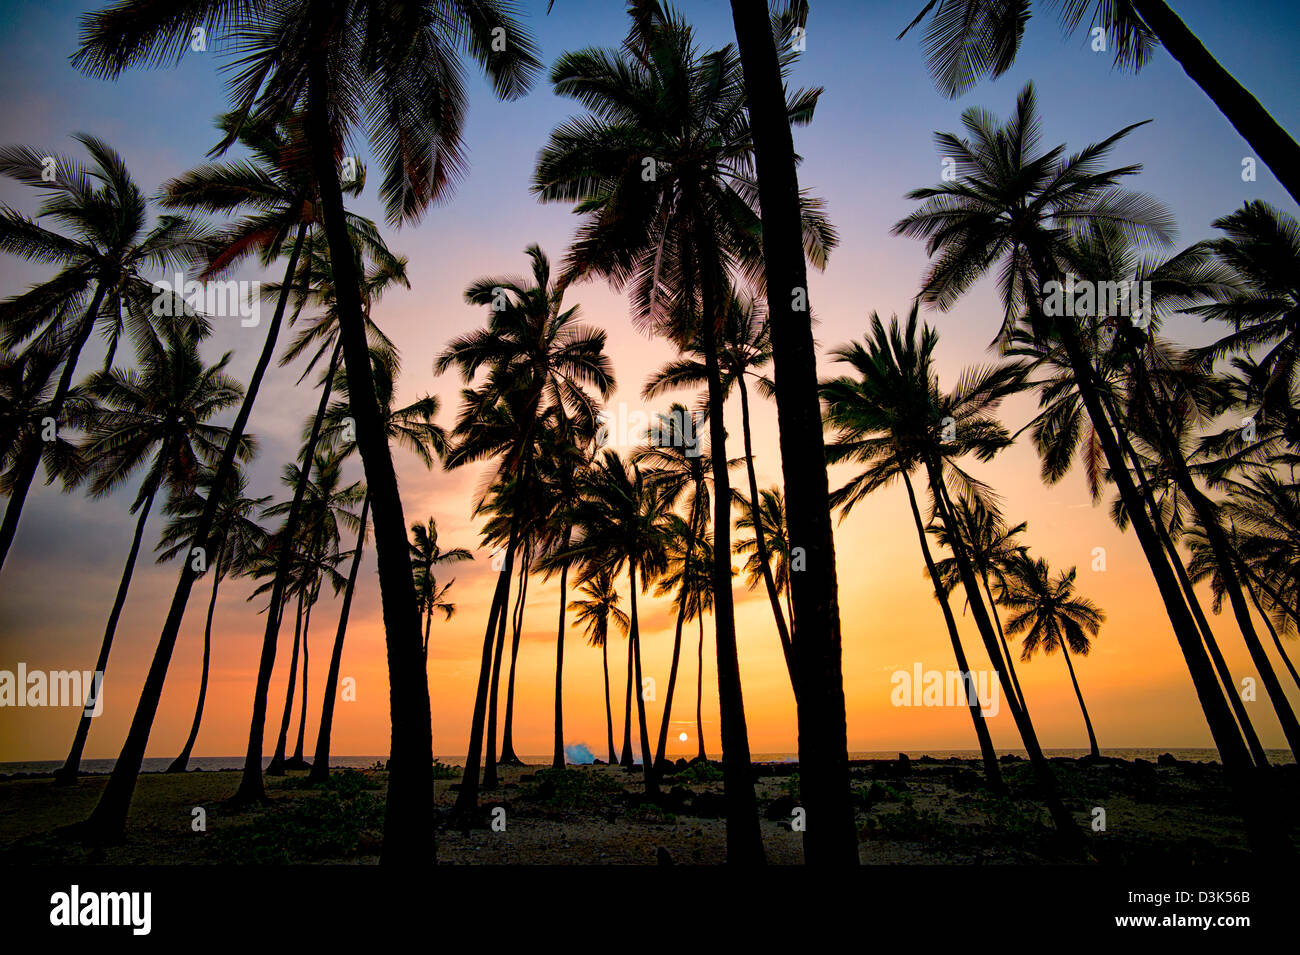 Palm trees at The Place of Refuge with sunset. Honaunau National Historic Park. The Big Island, Hawaii. - Stock Image